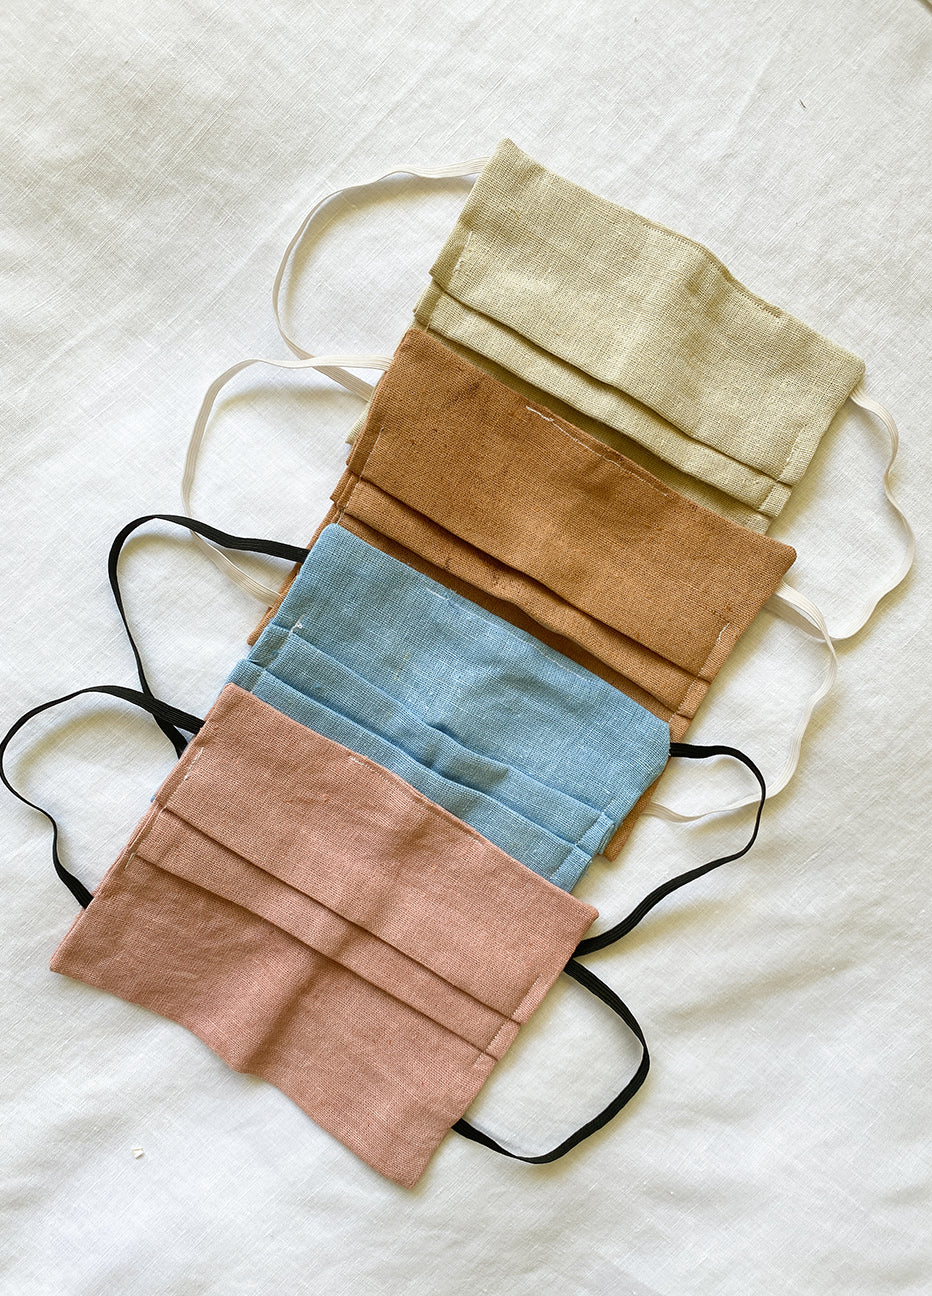 Naturaly Dyed Linen Masks